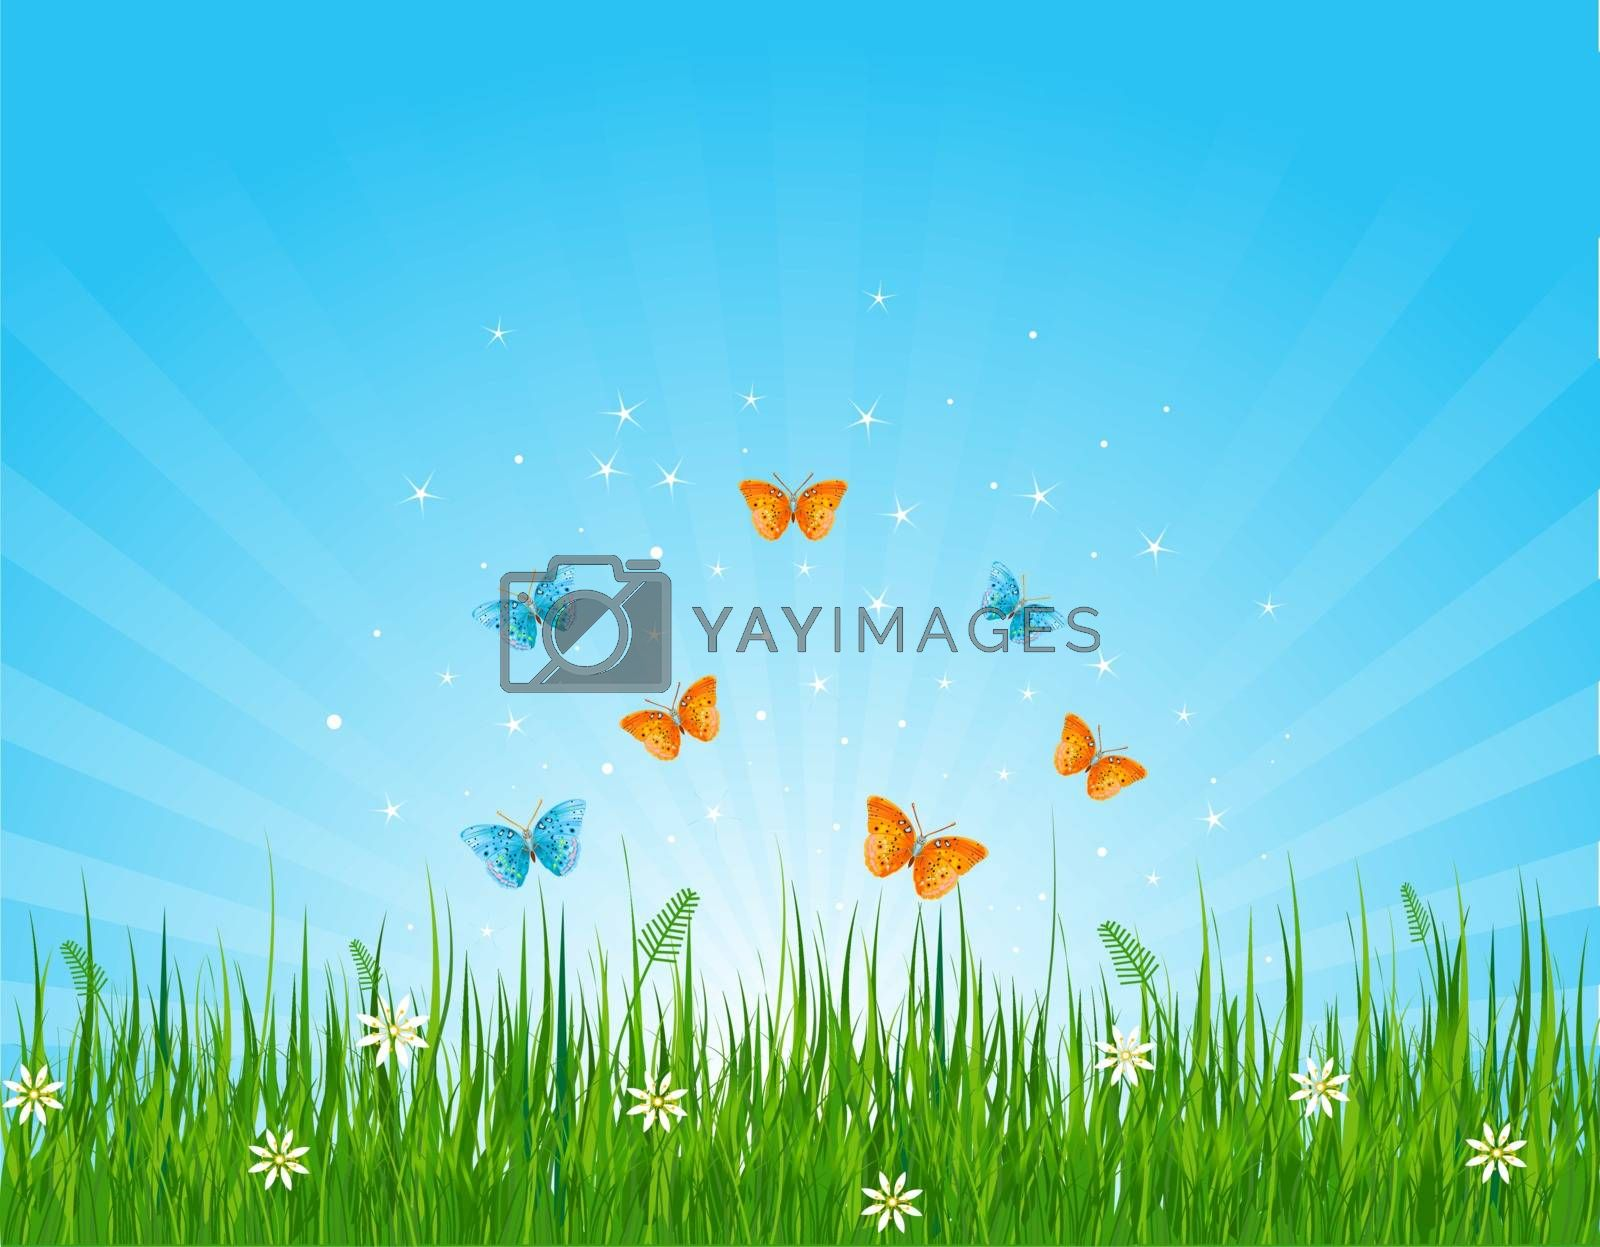 Royalty free image of Grassy field and butterflies by Dazdraperma